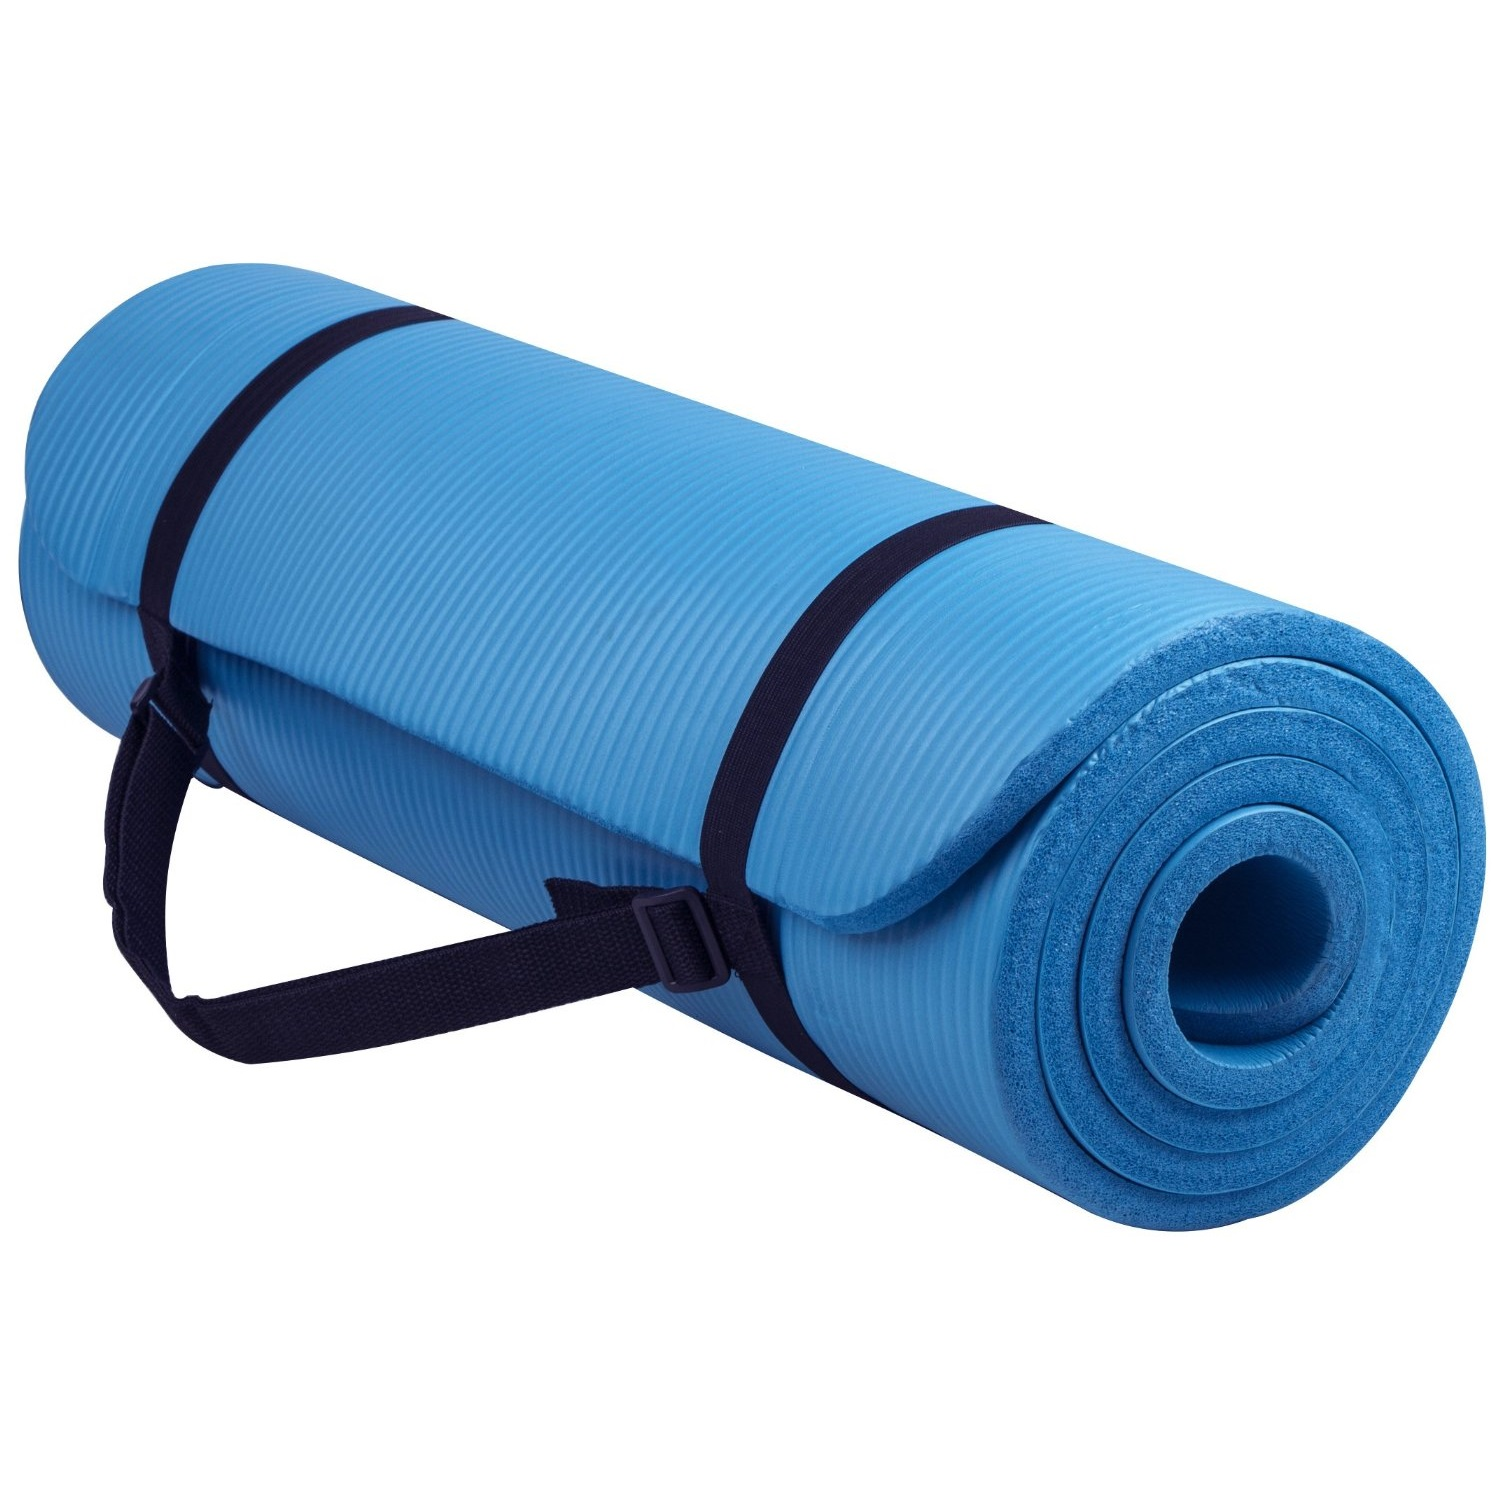 balancefrom goyoga 1/2 inch high density yoga mat with carrying strap blue